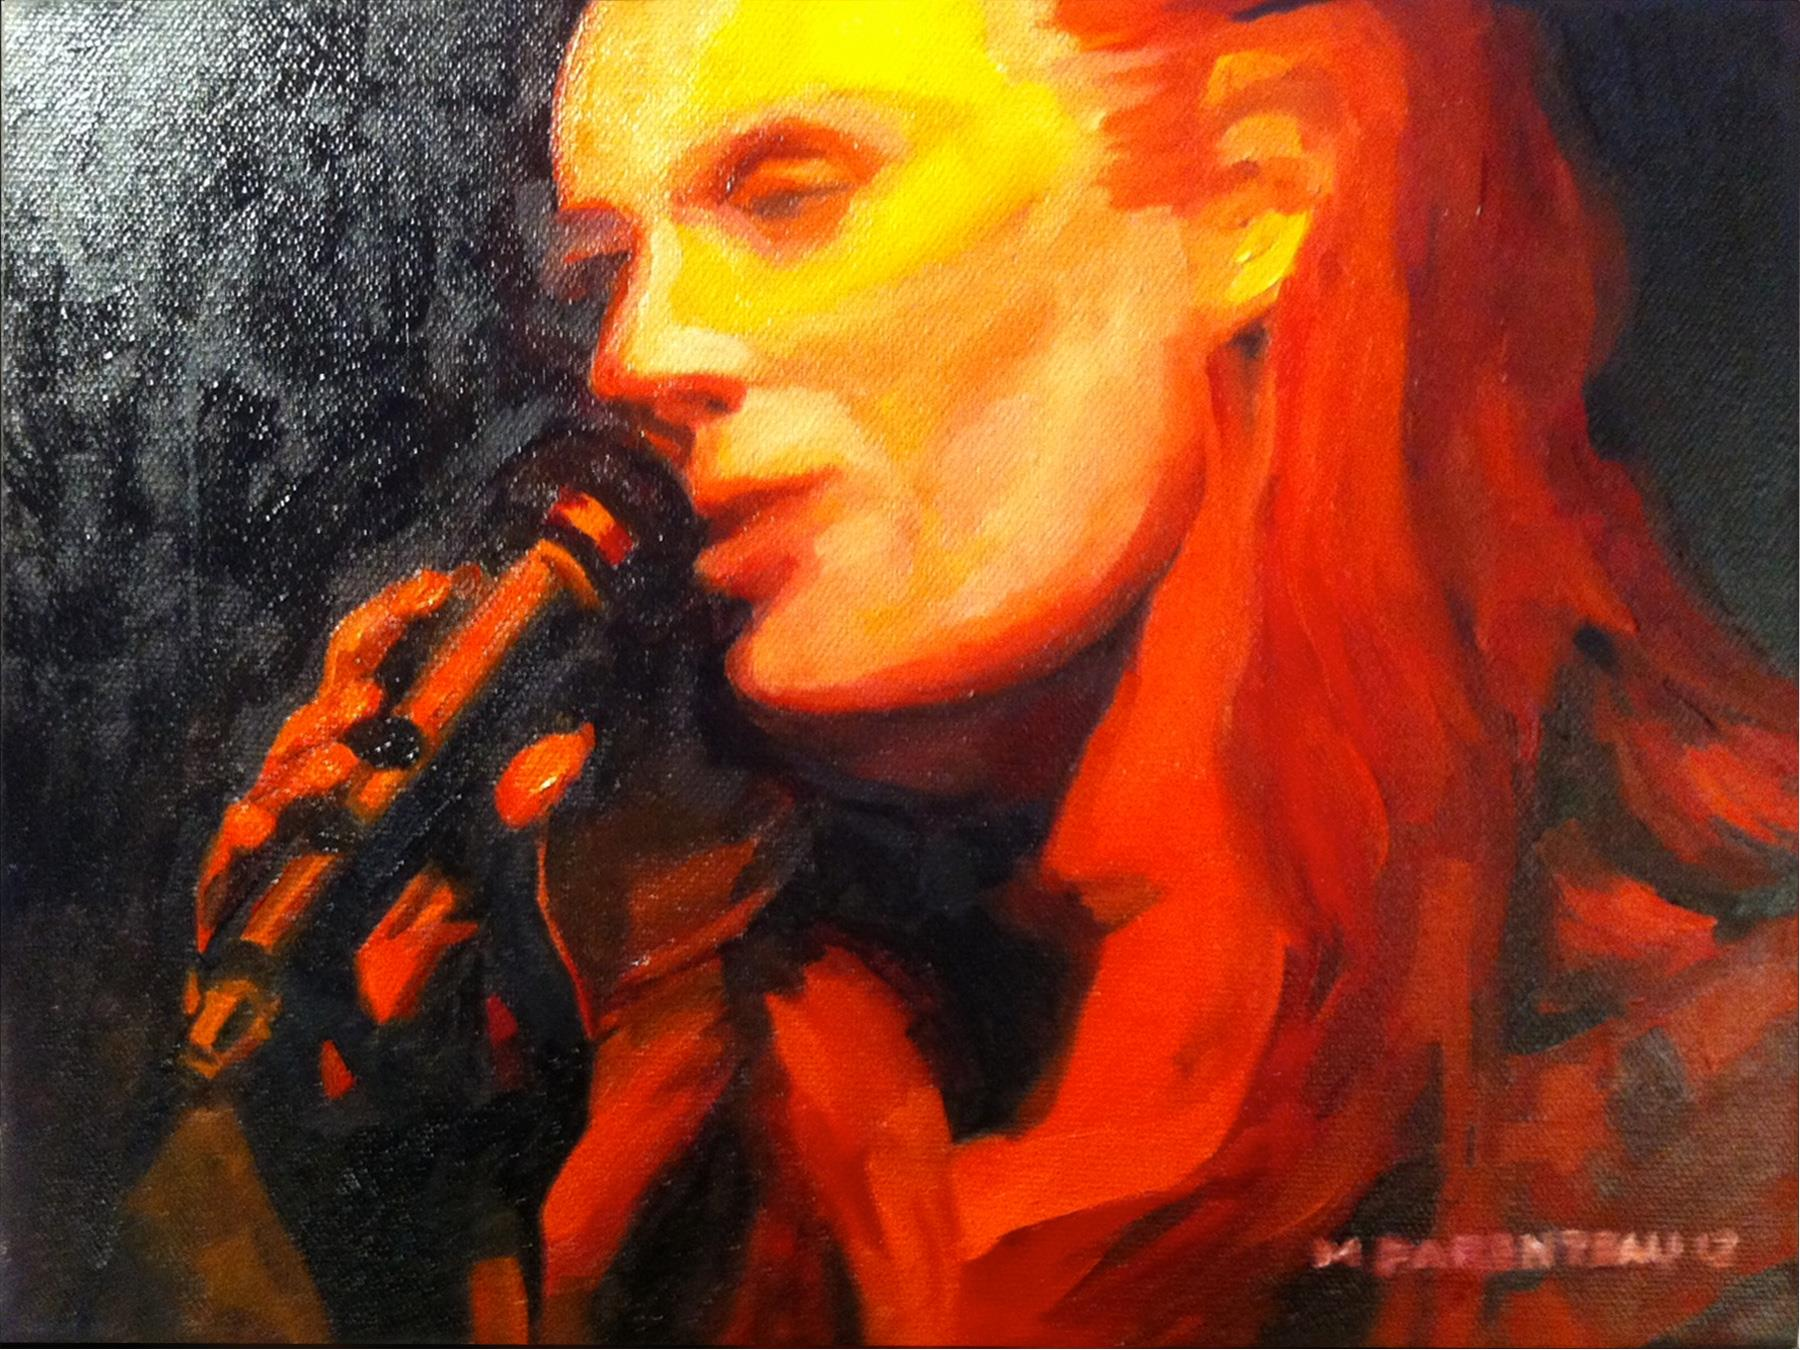 Singer on Fire 12 x 9 OIl on Canvas